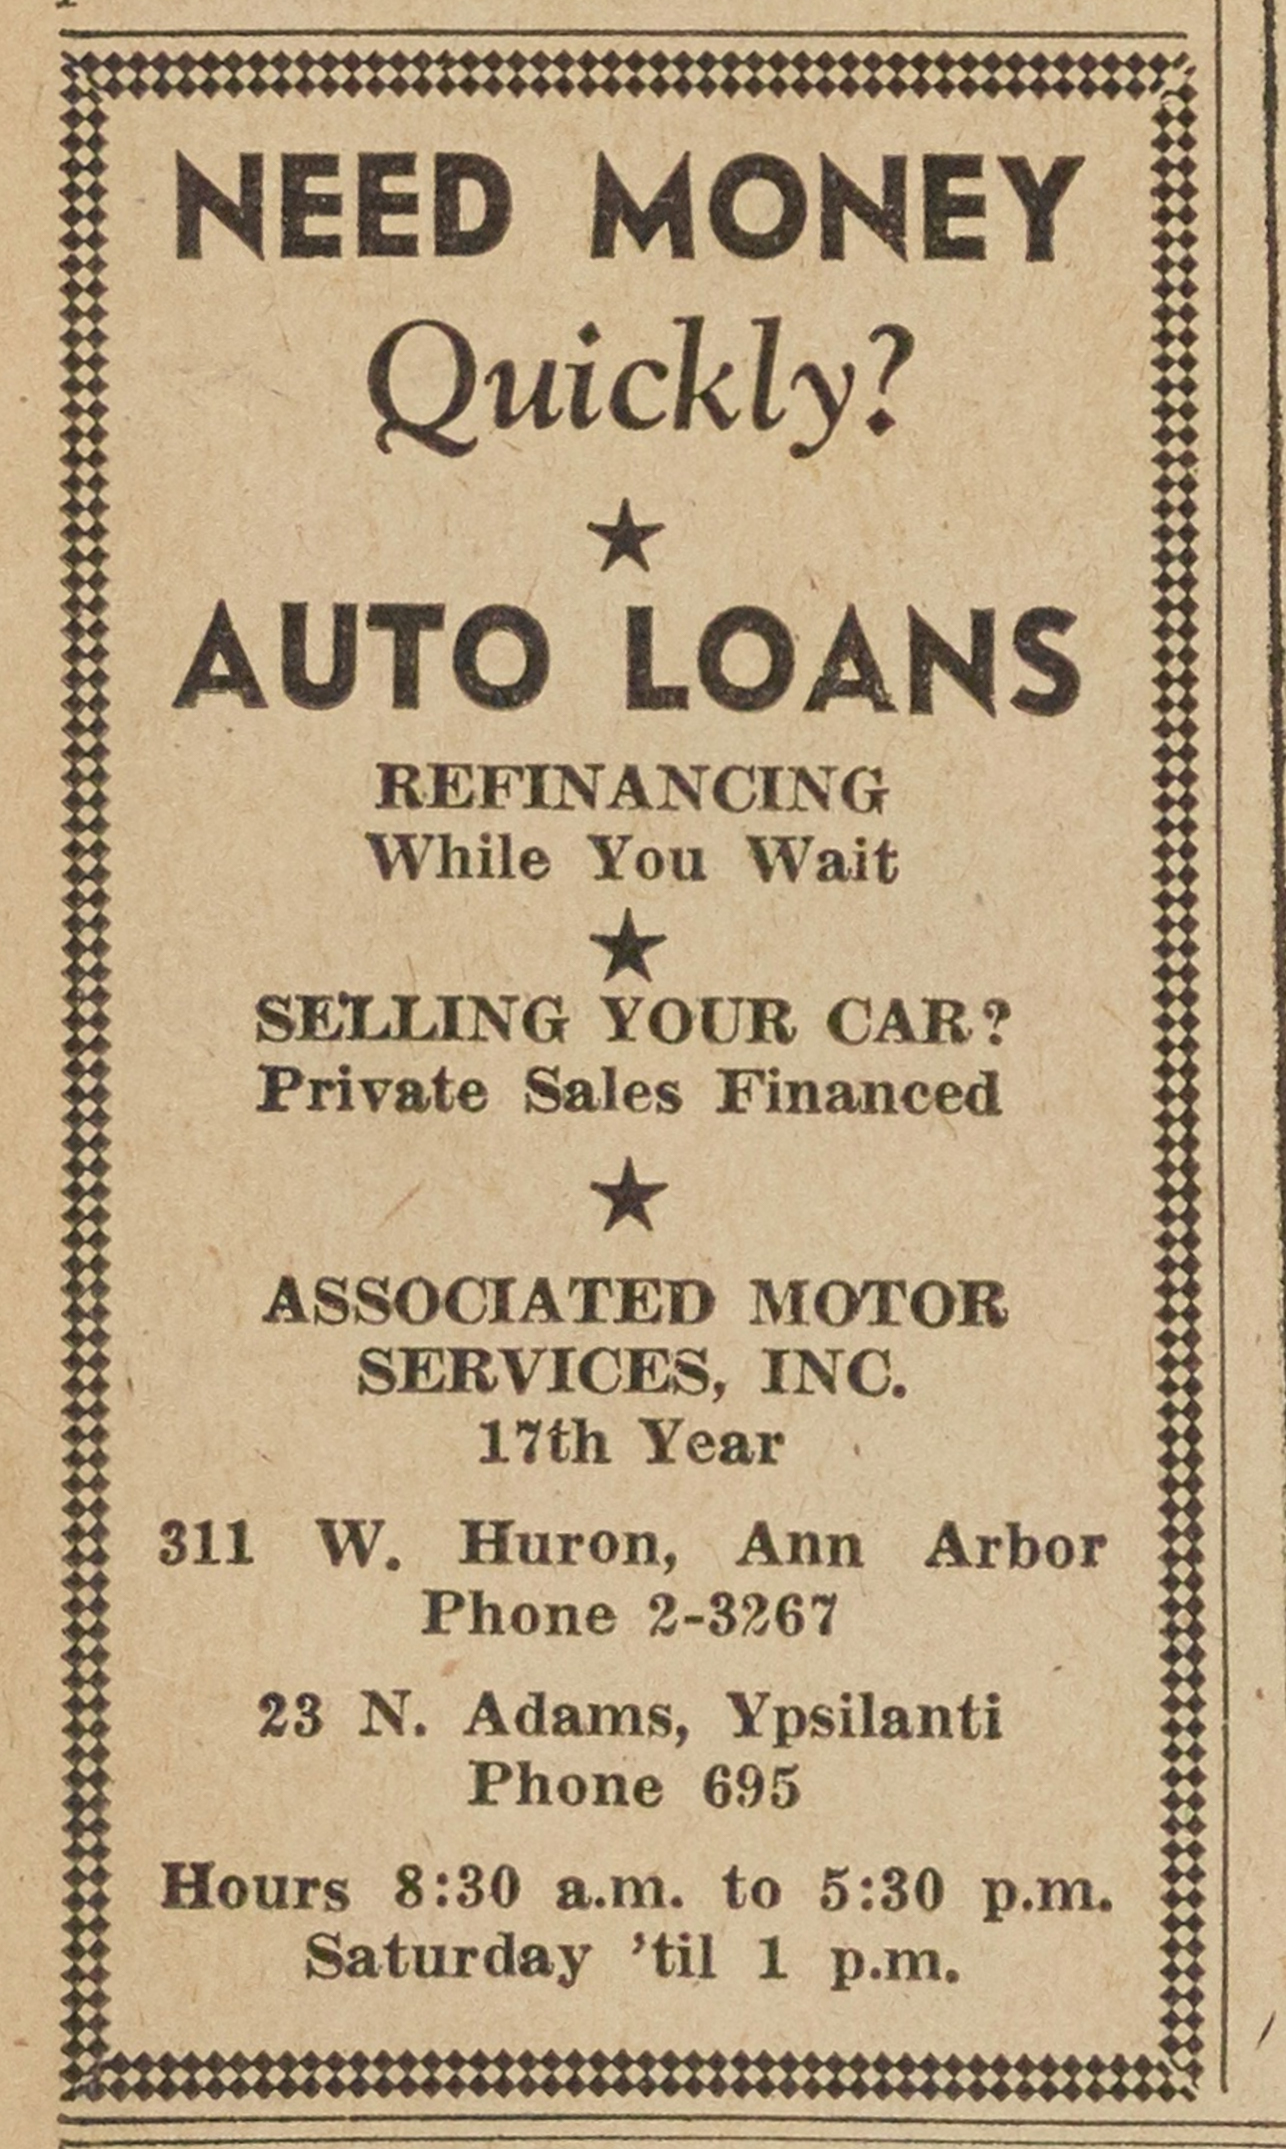 Associated Motor Services Inc. image